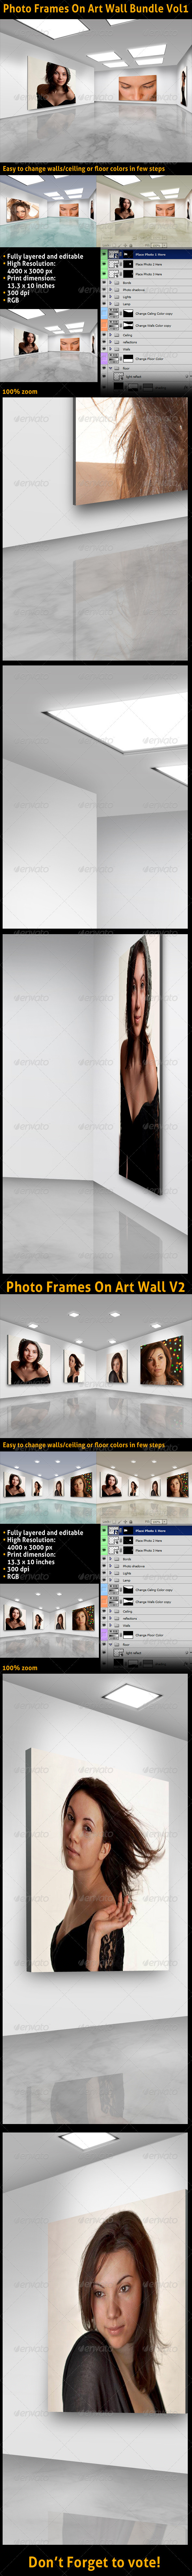 GraphicRiver Photo Frames On Art Wall Bundle Vol1 3421125